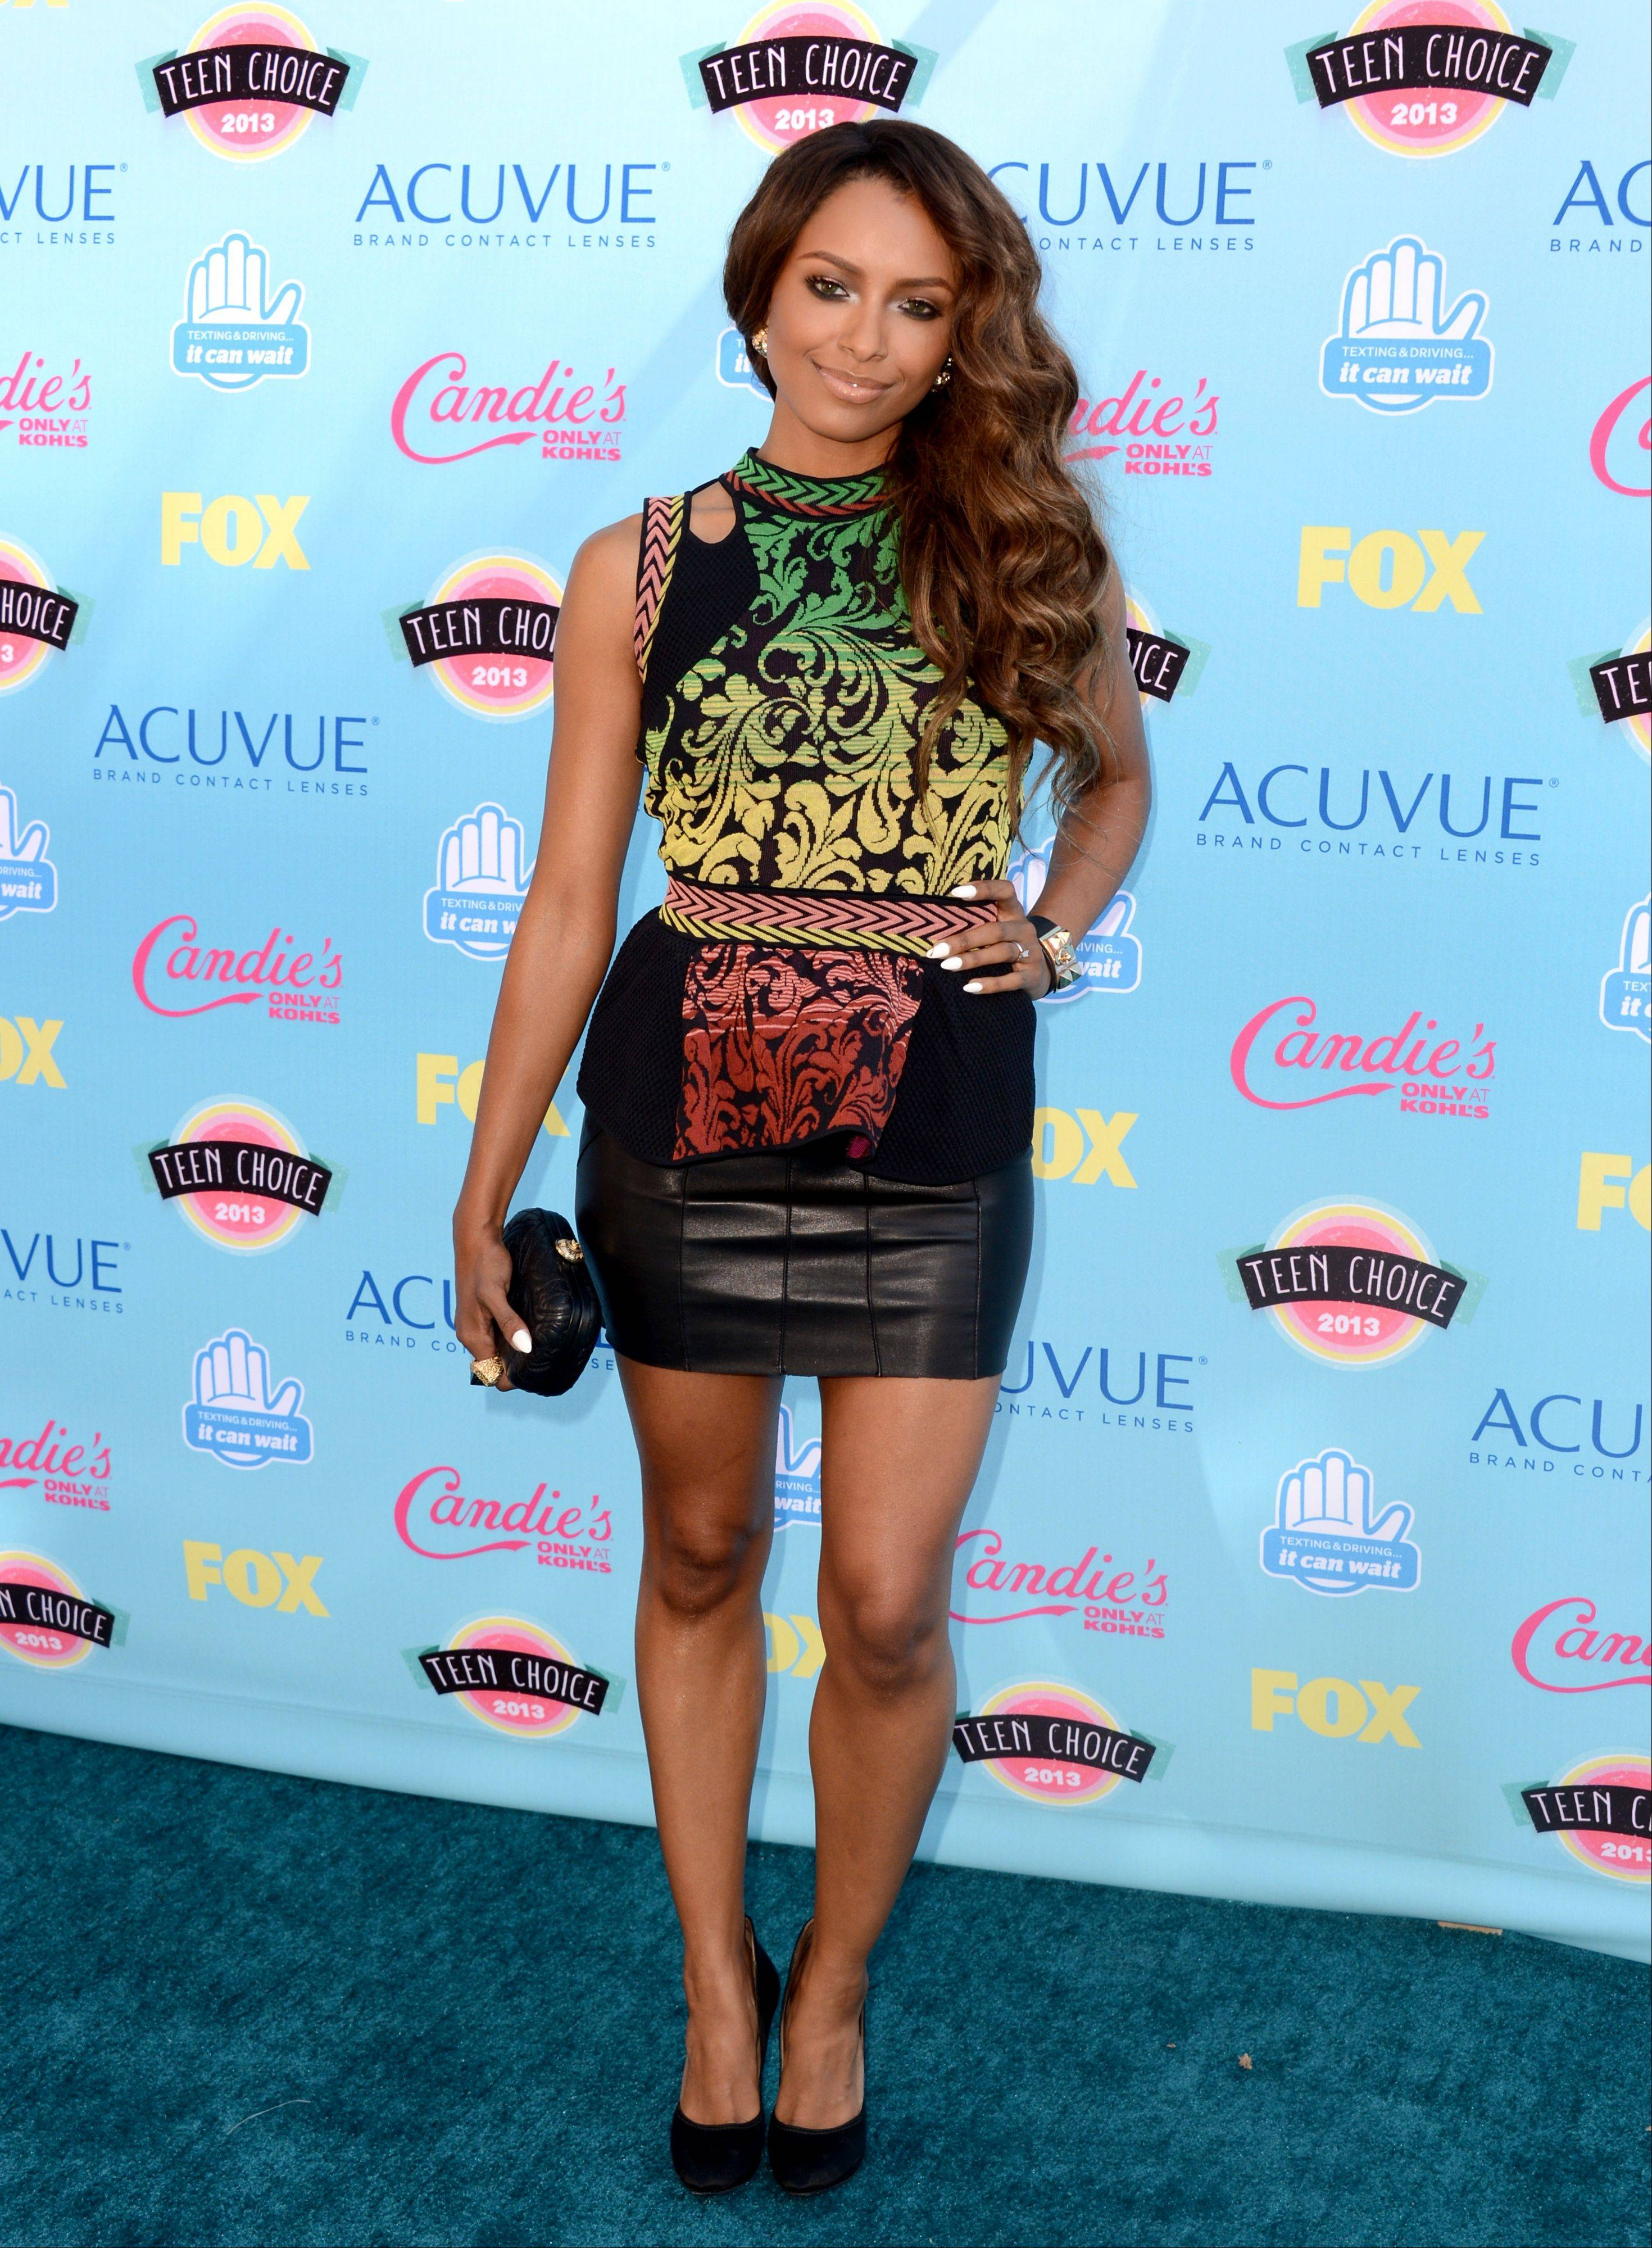 """The Vampire Diaries"" star Kat Graham arrives at the Teen Choice Awards at the Gibson Amphitheater on Sunday in Los Angeles."